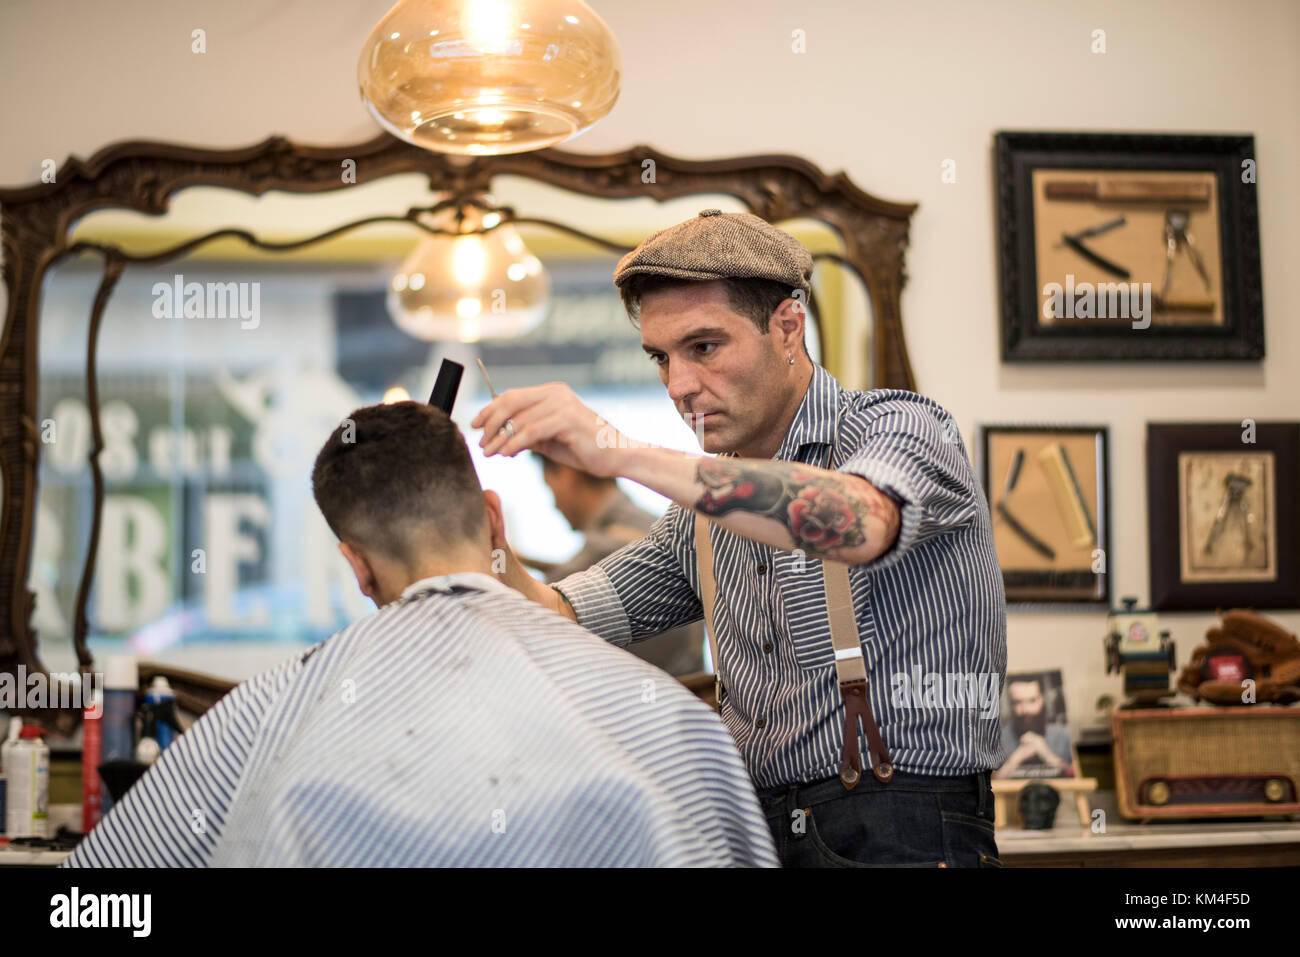 Barber shop, man cuts person hair Stock Photo